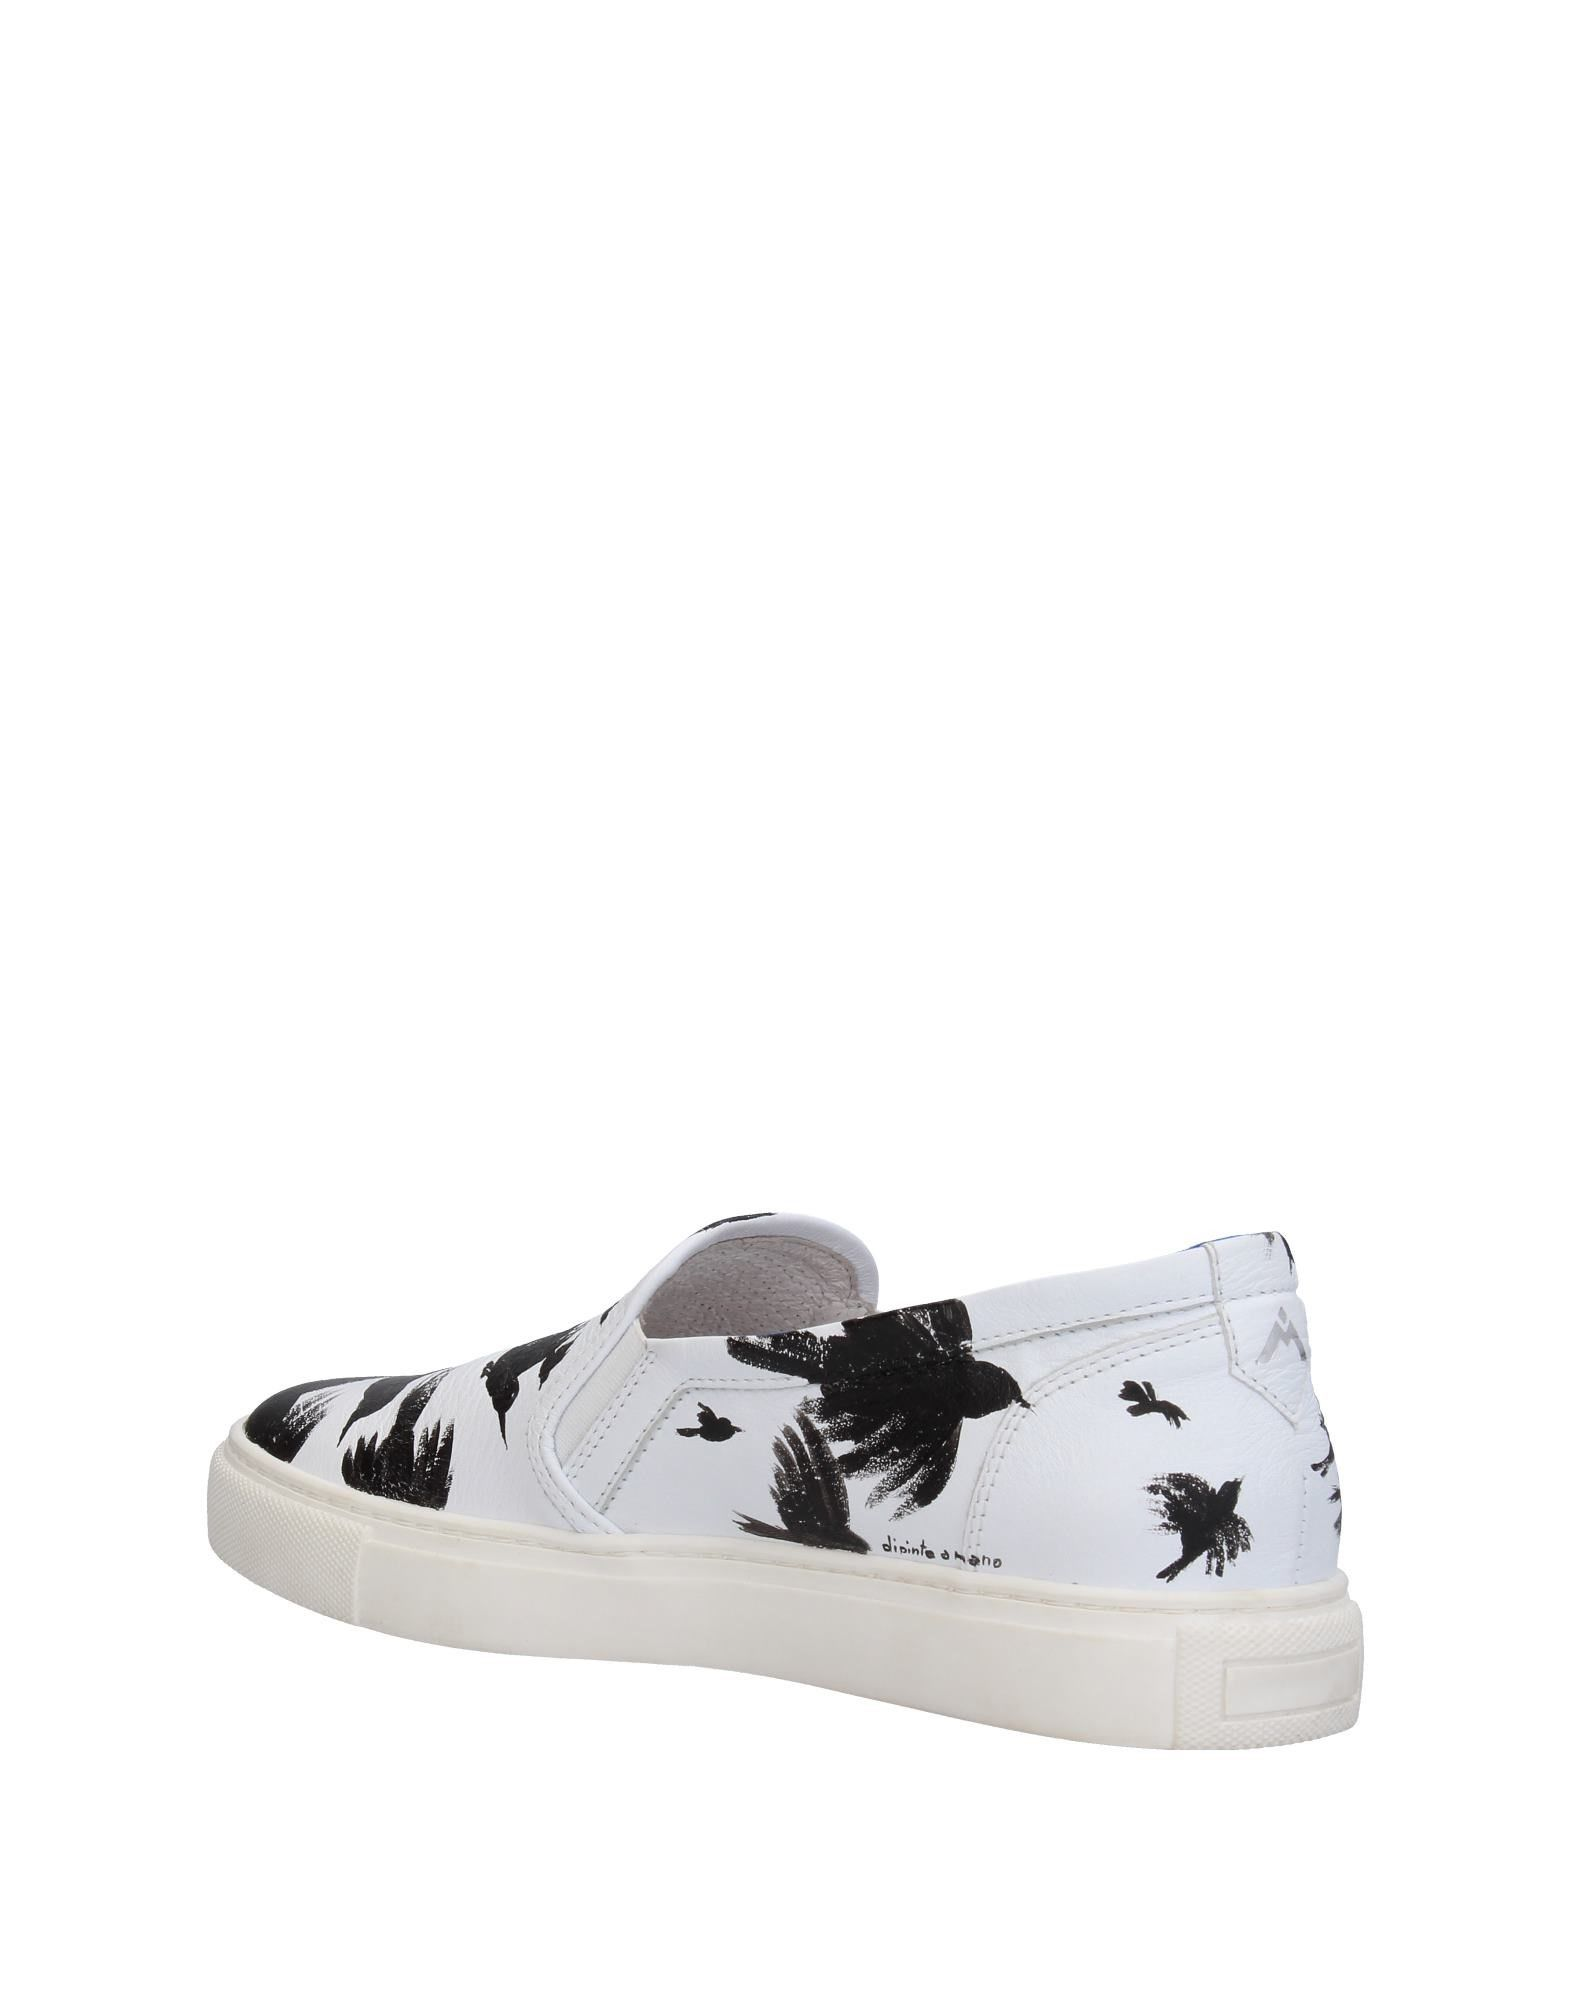 Andrea Morelli Sneakers - Men Andrea Morelli Sneakers online on on on  Canada - 11388025UX 62e640